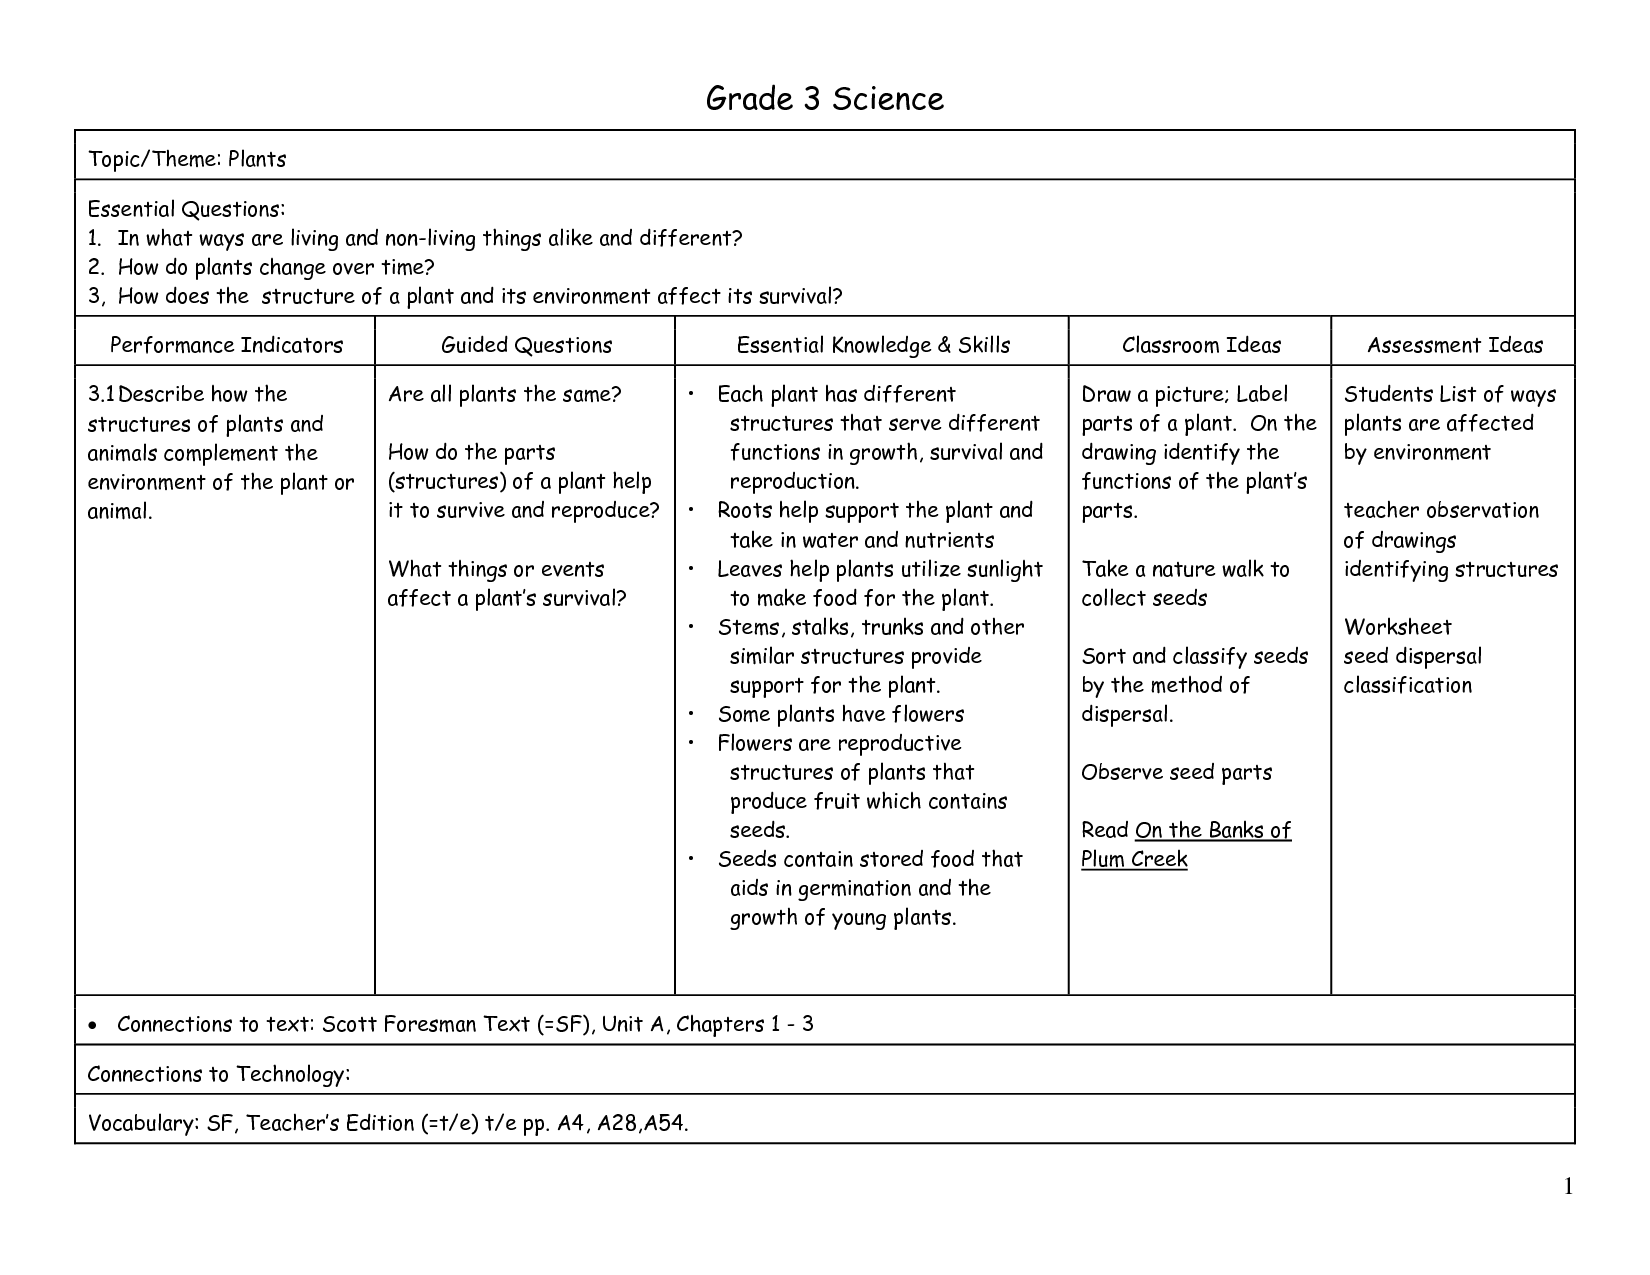 Daily Science Worksheets Photos - Getadating